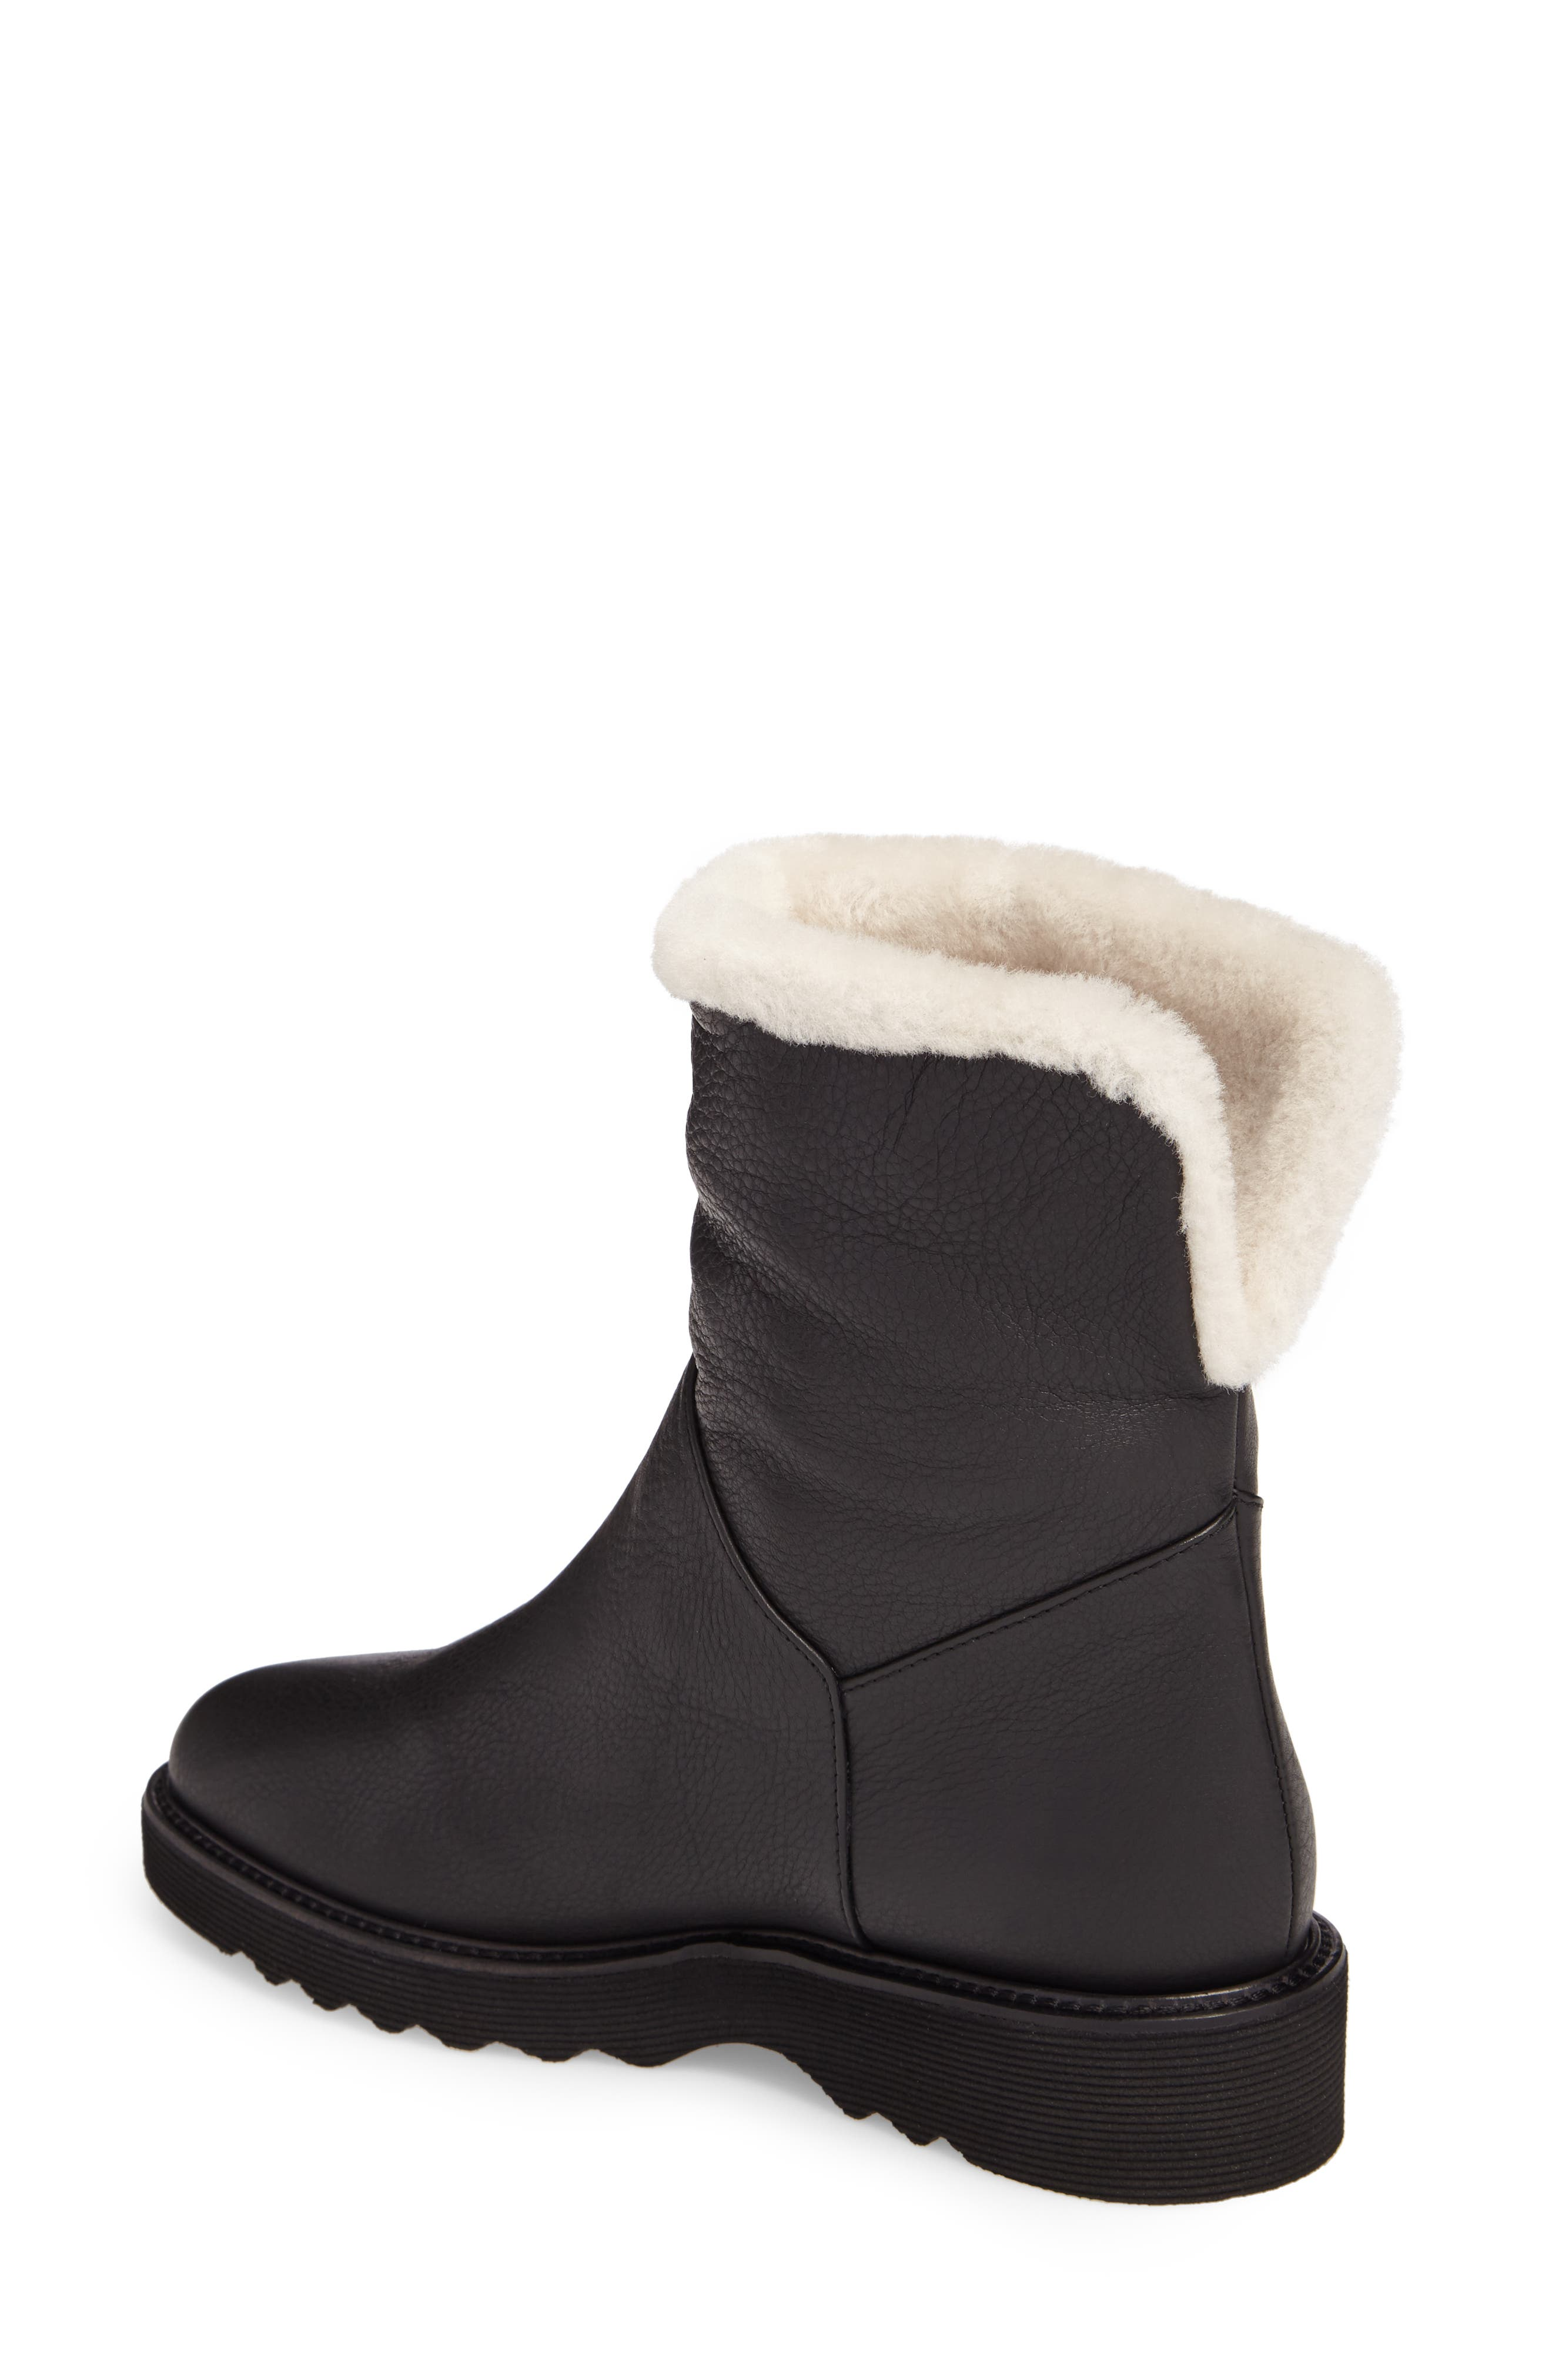 Kimberly Weatherproof Genuine Shearling Bootie,                             Alternate thumbnail 6, color,